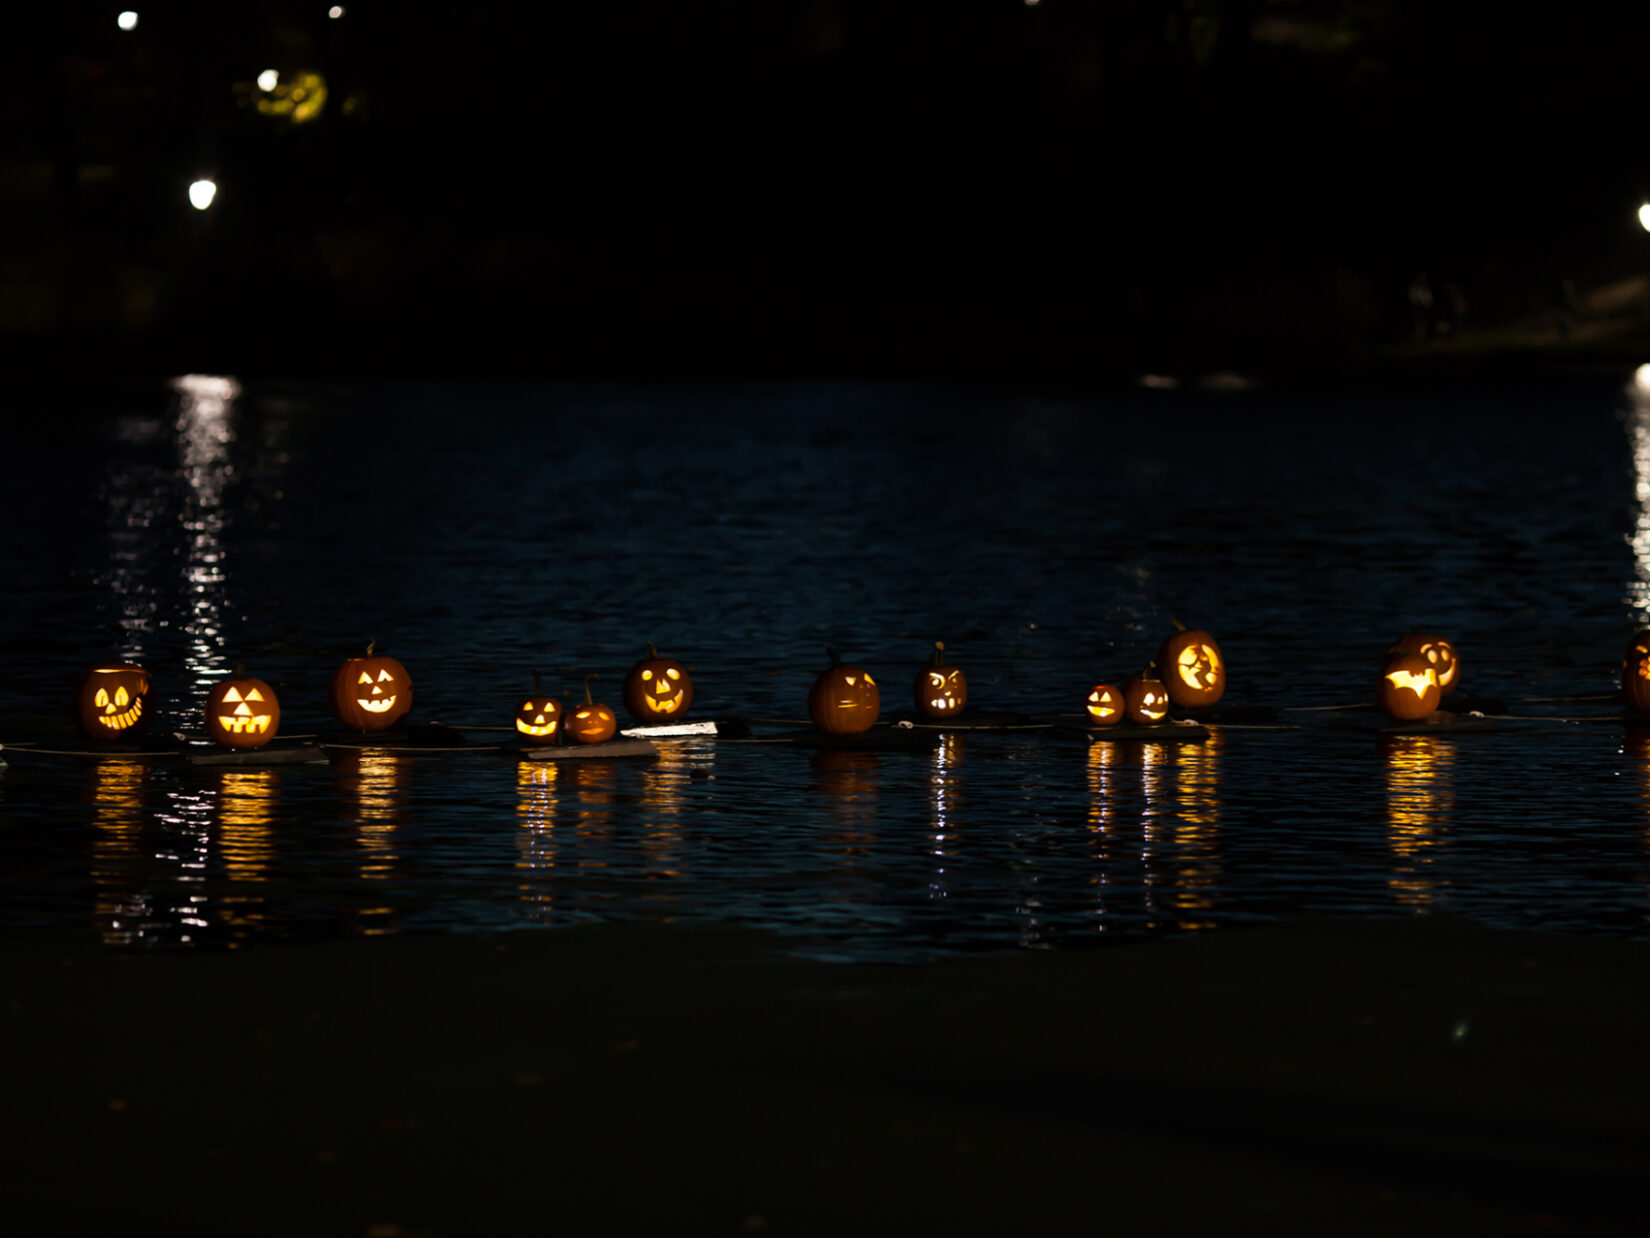 Pumpkins, lit from within, floating on the Meer at night